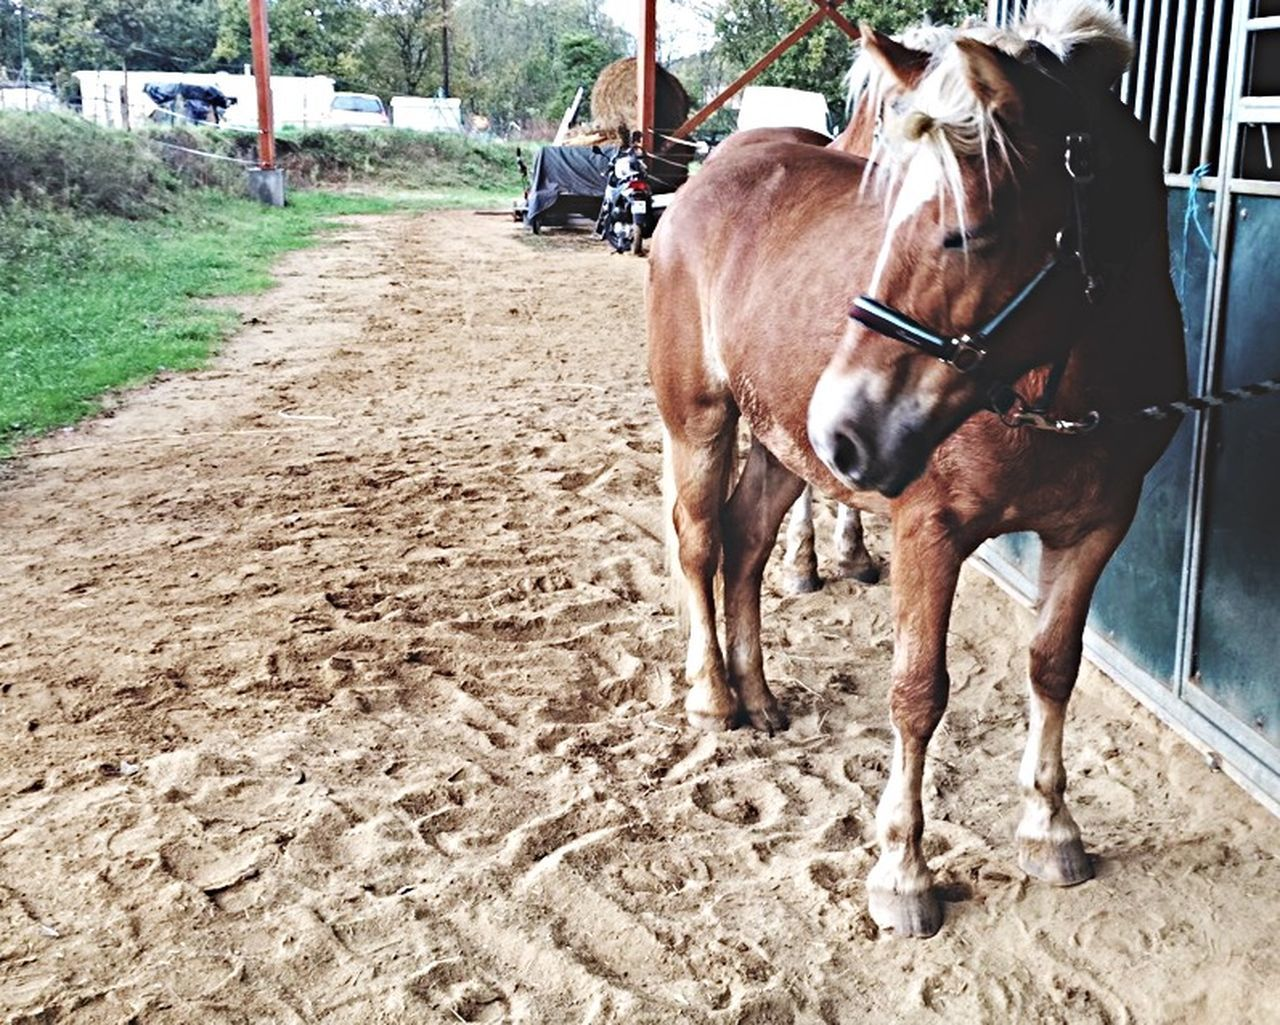 horse, domestic animals, animal themes, mammal, working animal, livestock, day, one animal, outdoors, horse cart, no people